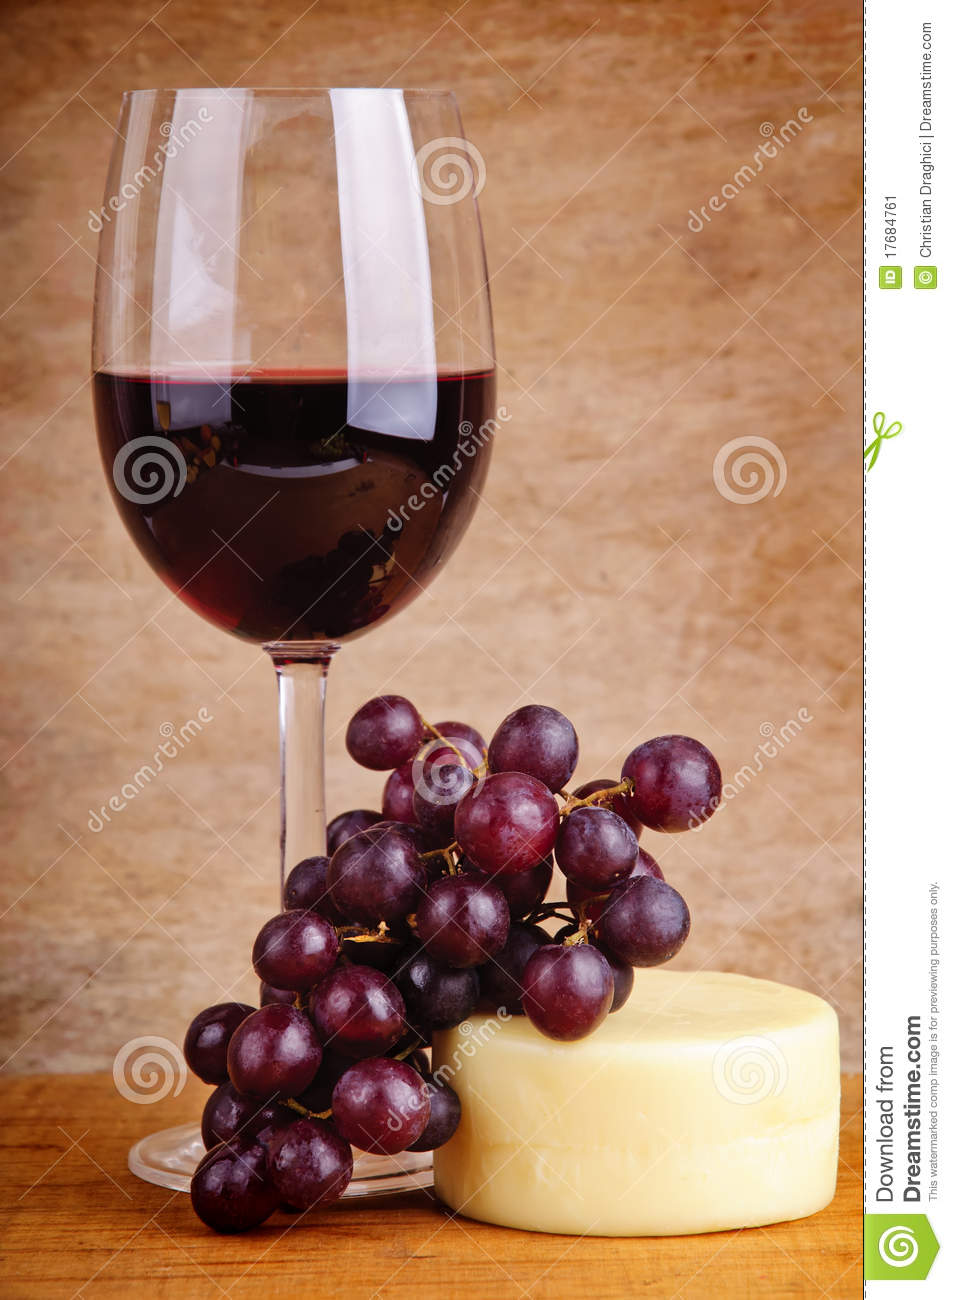 vin rouge raisins et fromage image stock image du nature alcool 17684761. Black Bedroom Furniture Sets. Home Design Ideas